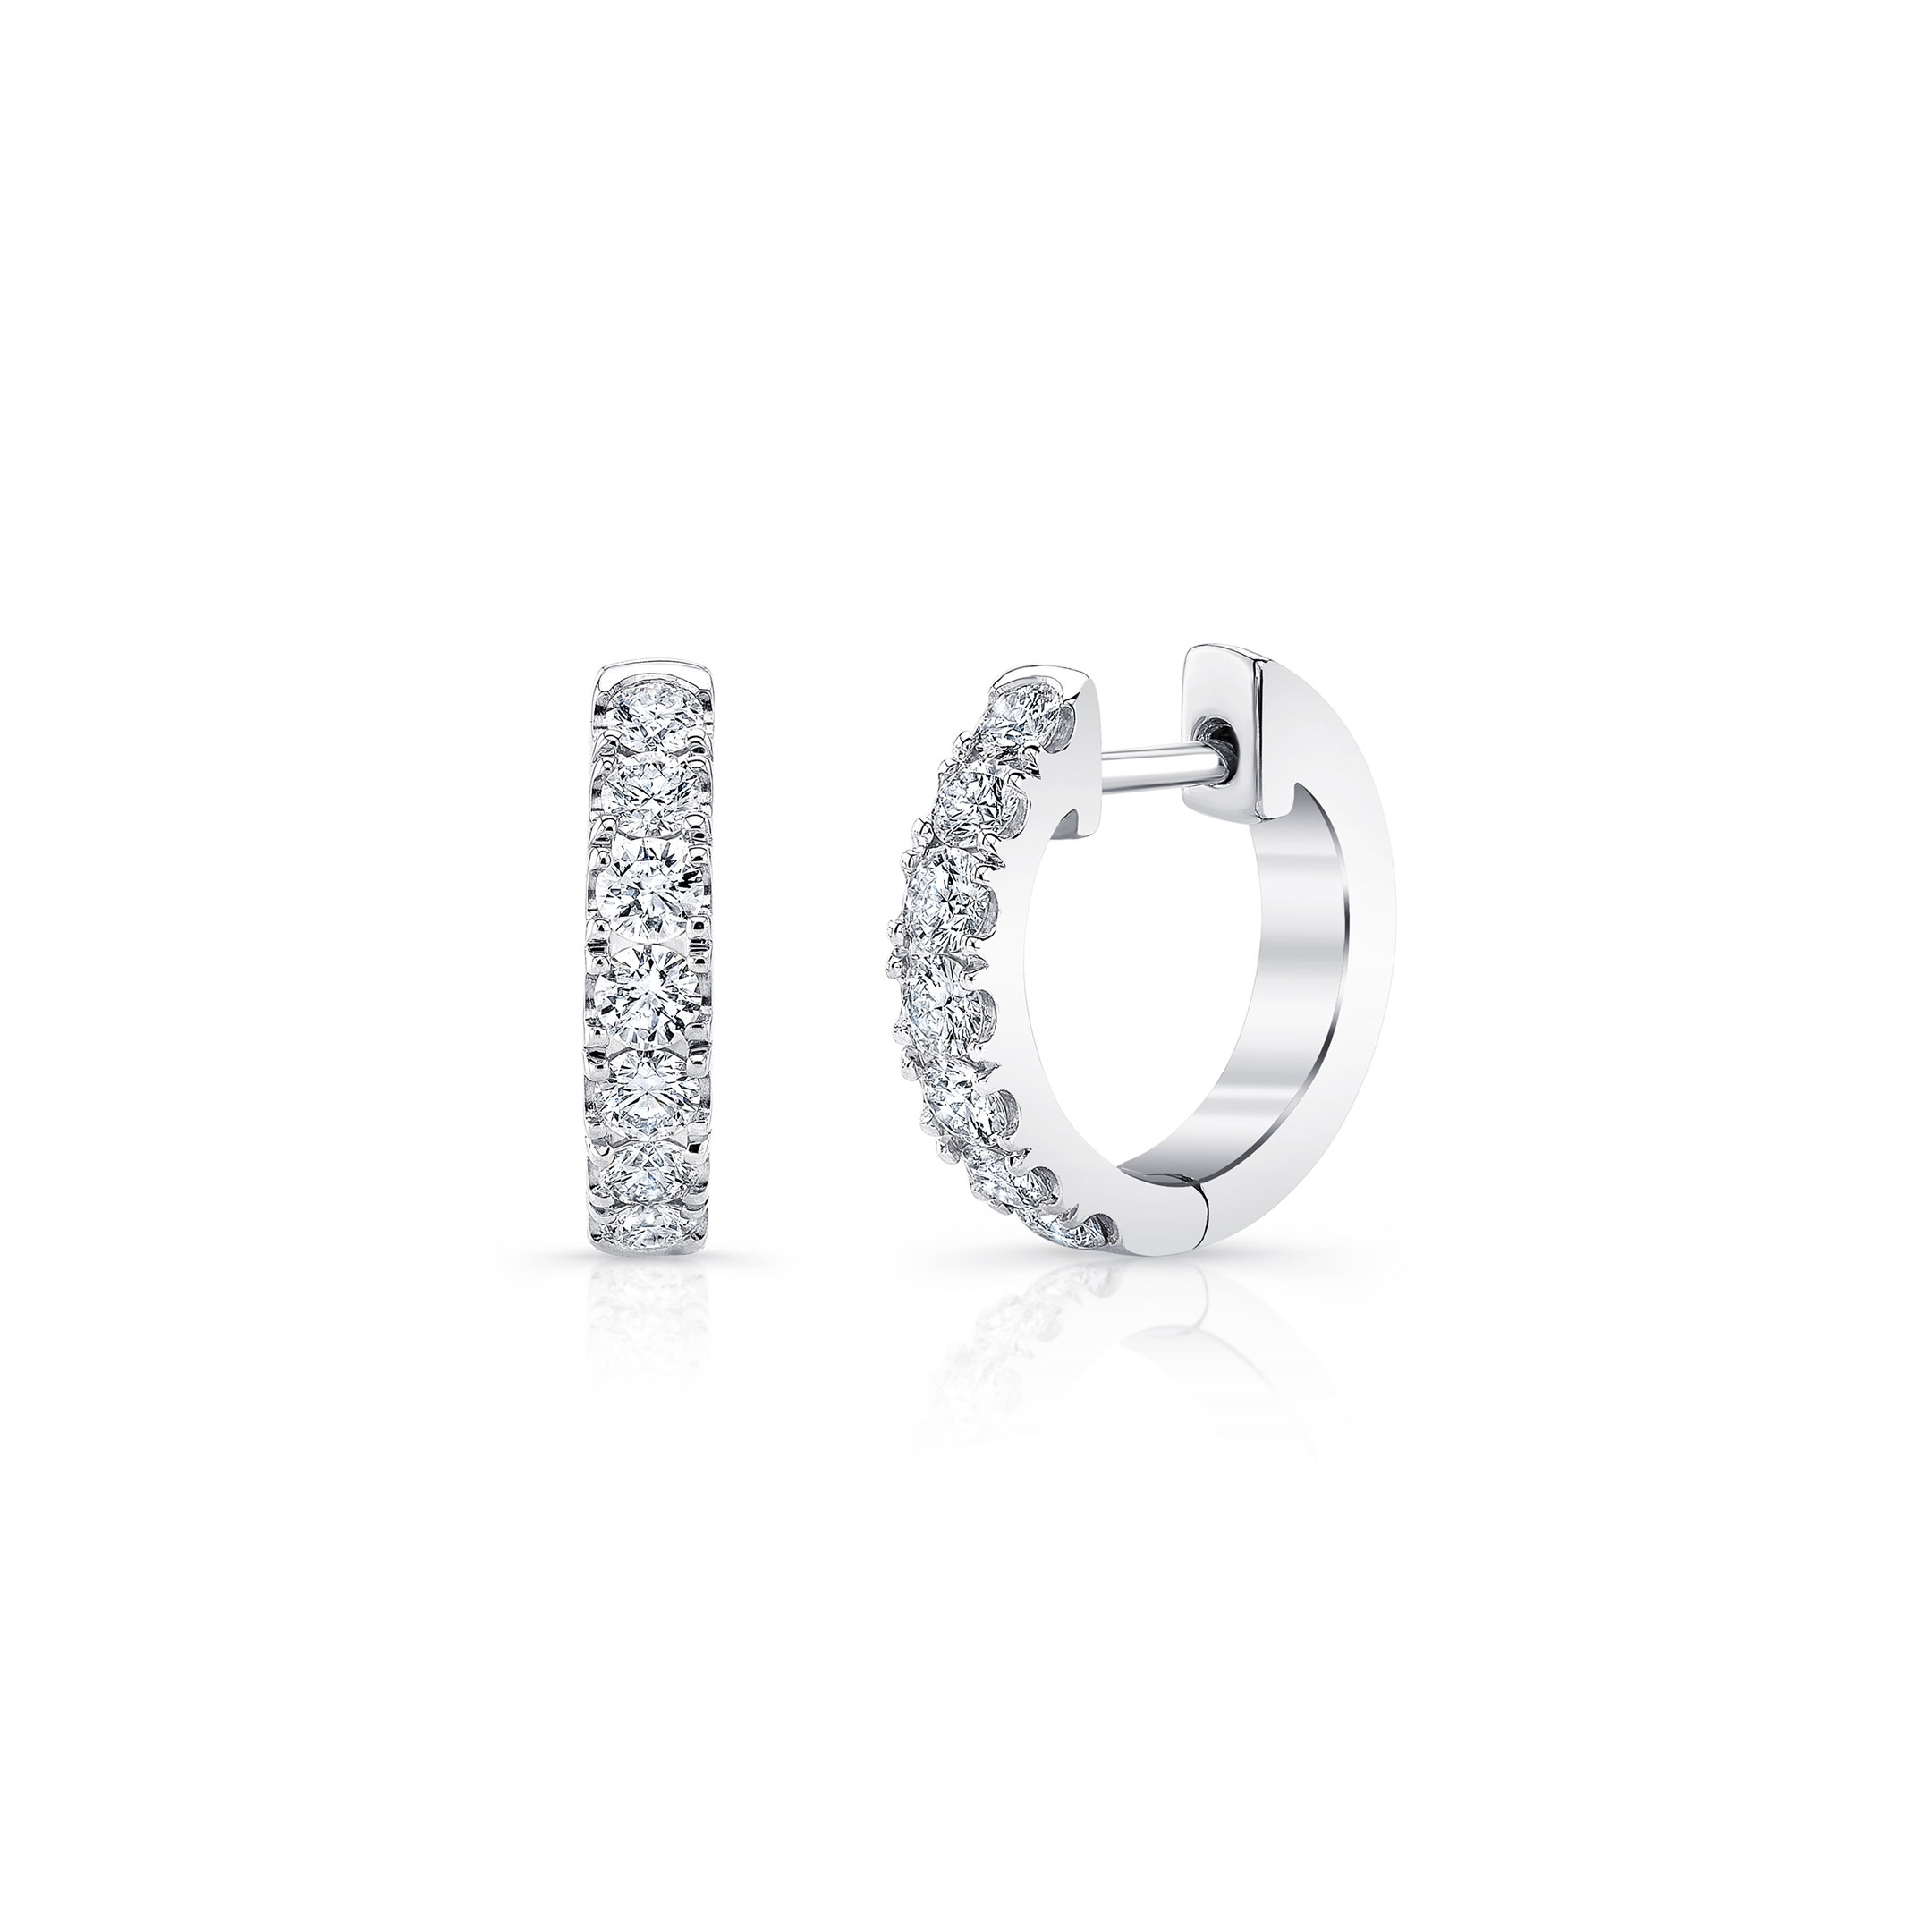 Eloise Mini Round Brilliant Diamond Huggie Earrings in 18k White Gold Front View by Oui by Jean Dousset